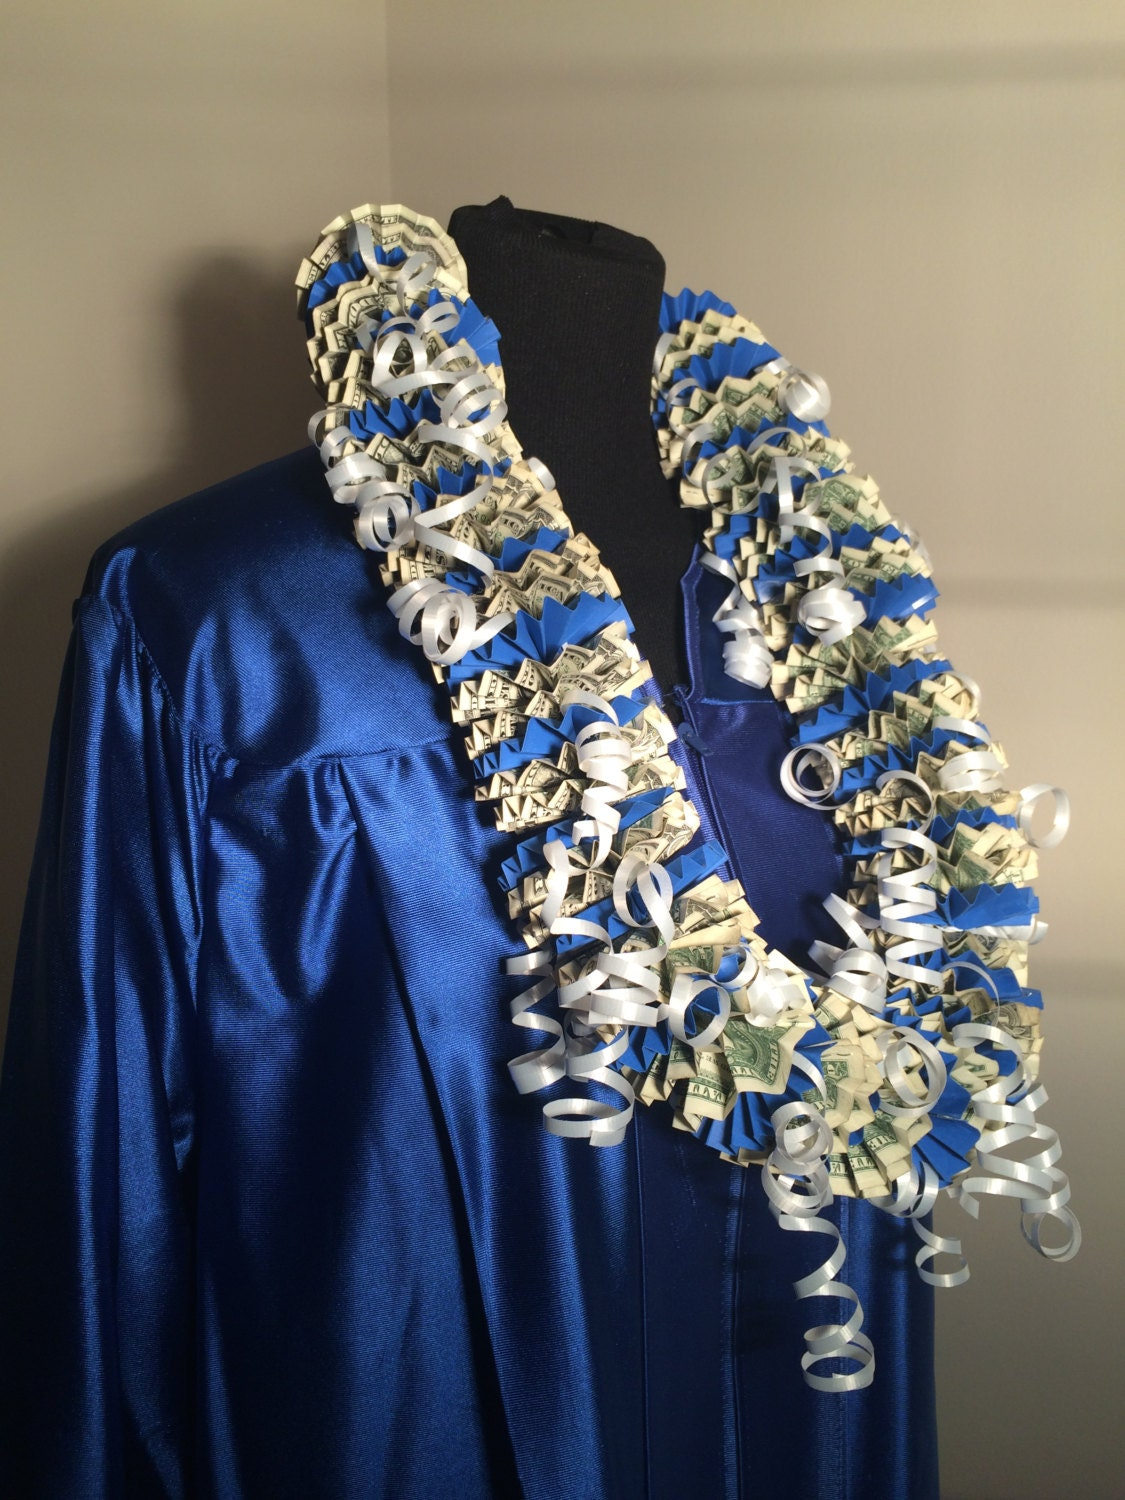 50 Dollar Money Lei Graduation Lei Cash Lei Dollar Bill. Business Proposal Template Doc. Percentage Of College Graduates In Us. Company Picnic Invitation. Civil Rights Posters. Most Wanted Picture Frame. Free Vintage Wedding Invitation Template. Rutgers Graduate School Tuition. Test Template For Teachers